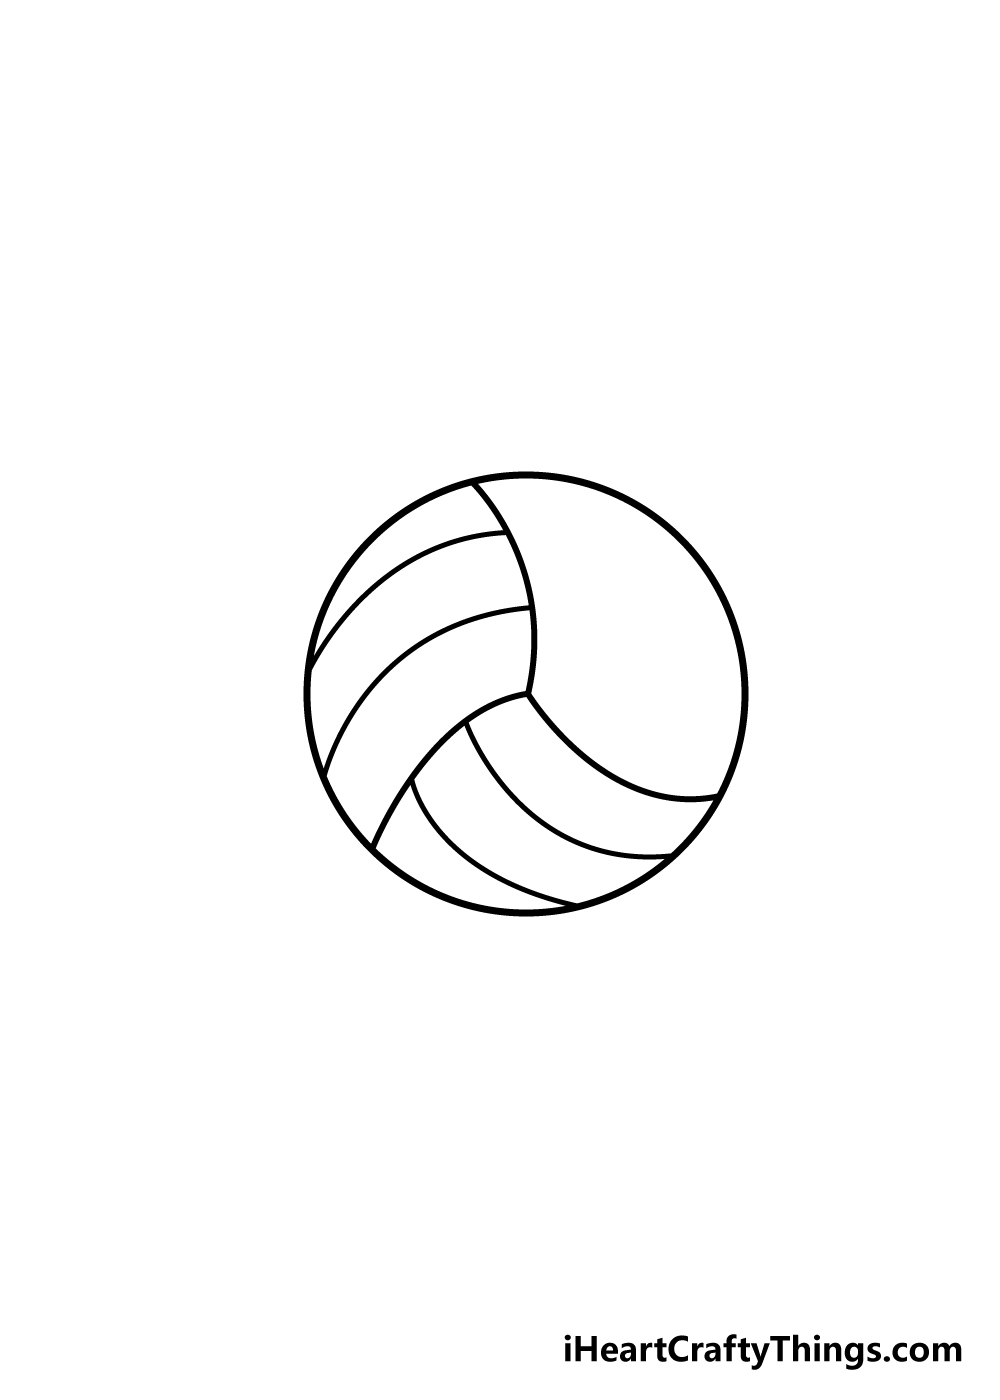 volleyball drawing step 4